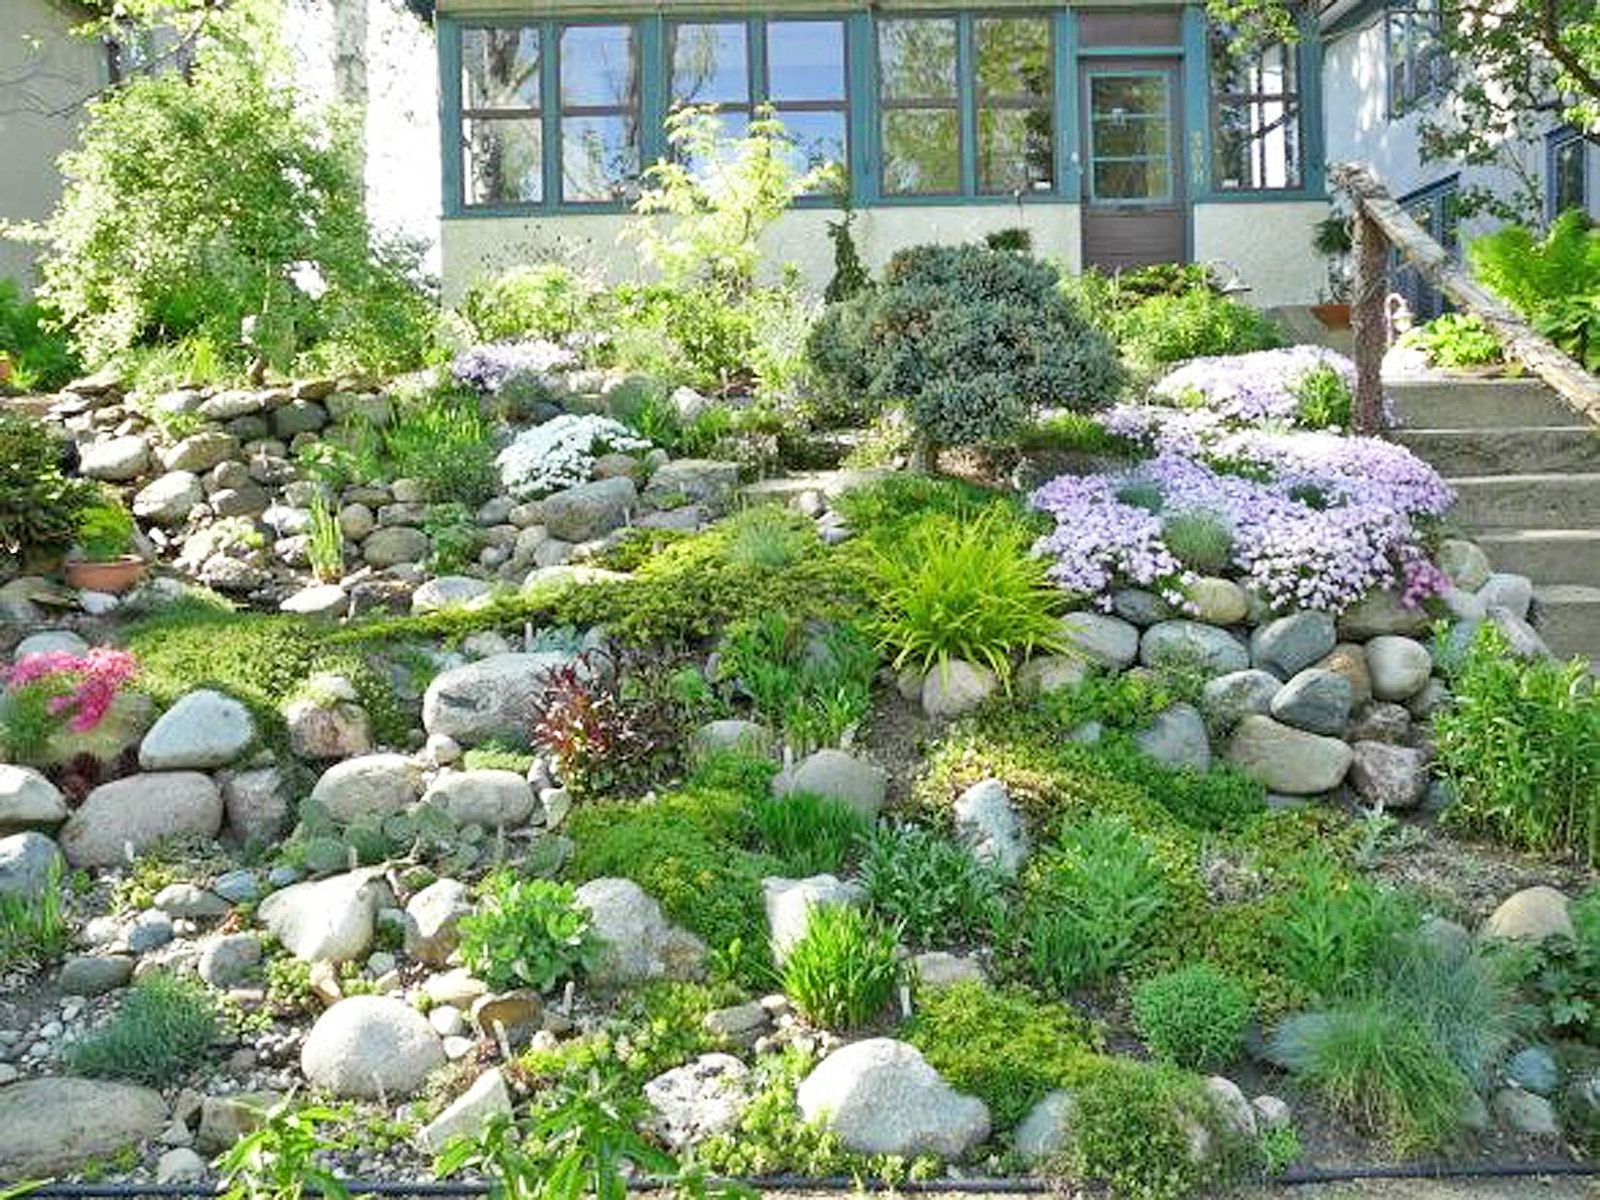 13 Hillside Landscaping Ideas To Maximize Your Yard within 14 Some of the Coolest Concepts of How to Improve Backyard Ideas For Sloping Yards